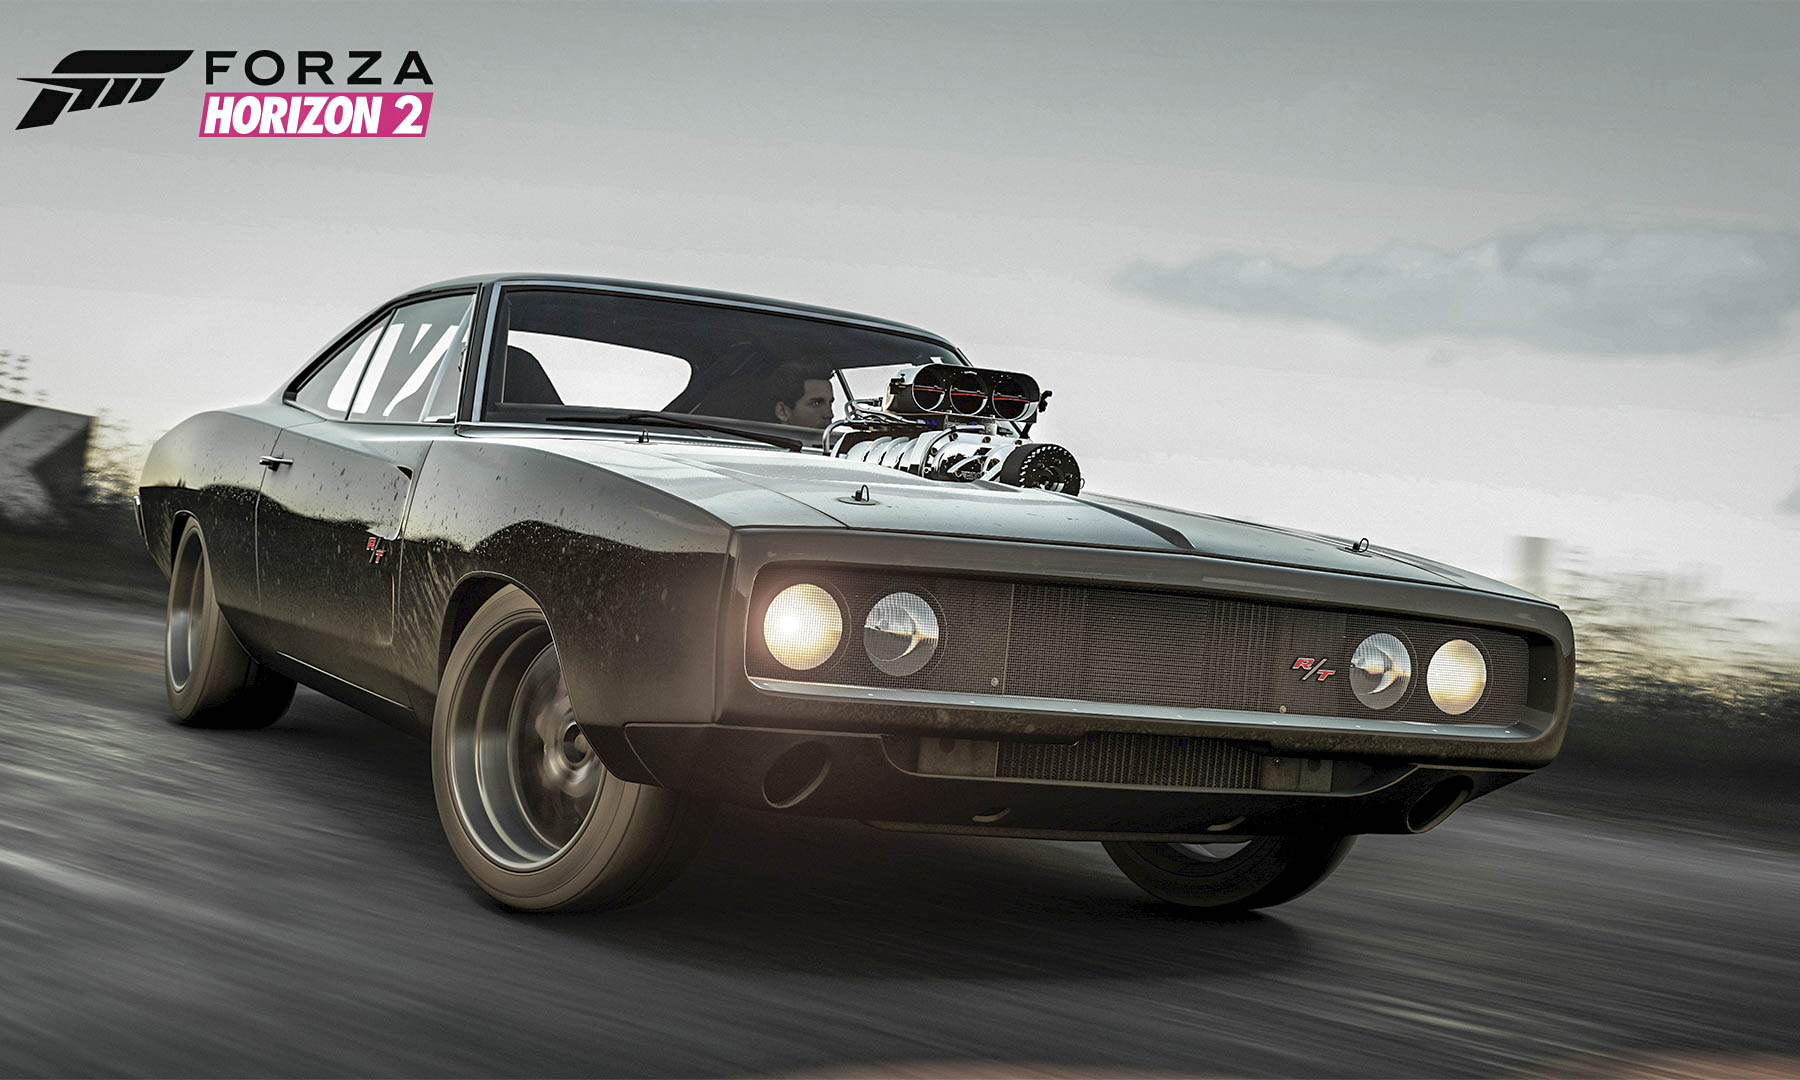 Image - 1970 Dodge Charger - Forza Horizon 2.jpg | The Fast and the ...